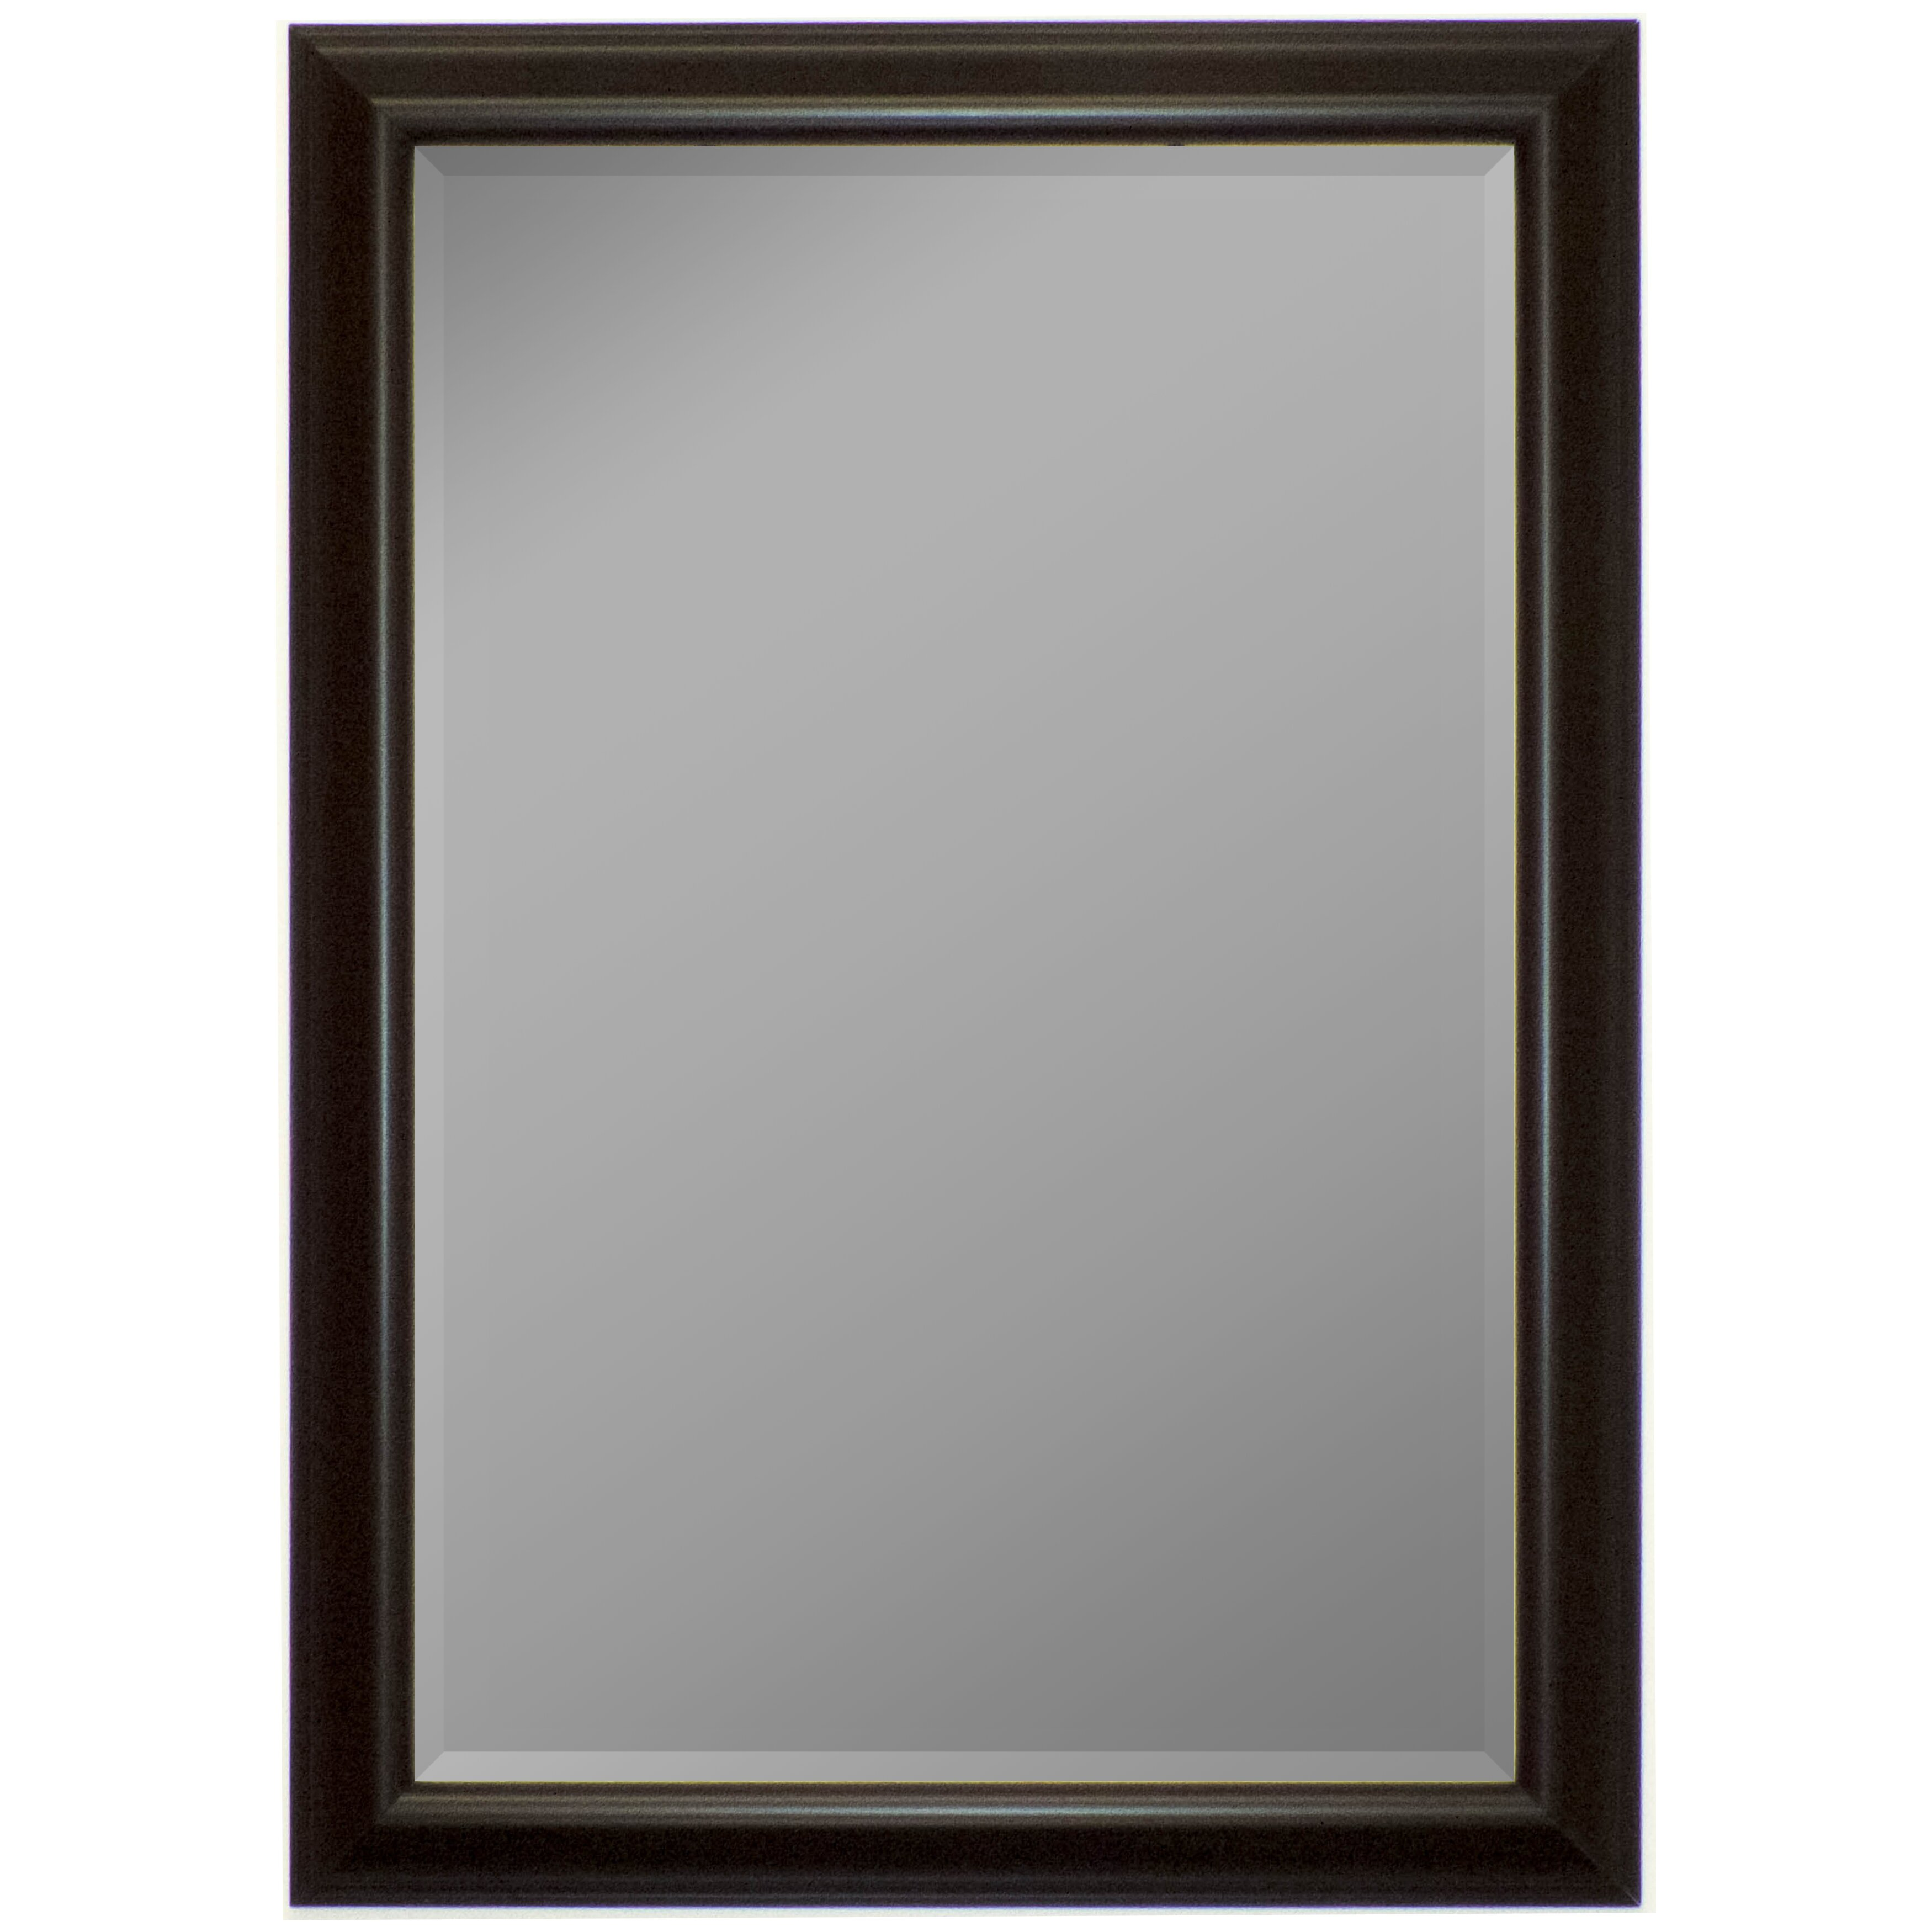 Second look mirrors glossy silver smoked black wall mirror for Black wall mirror